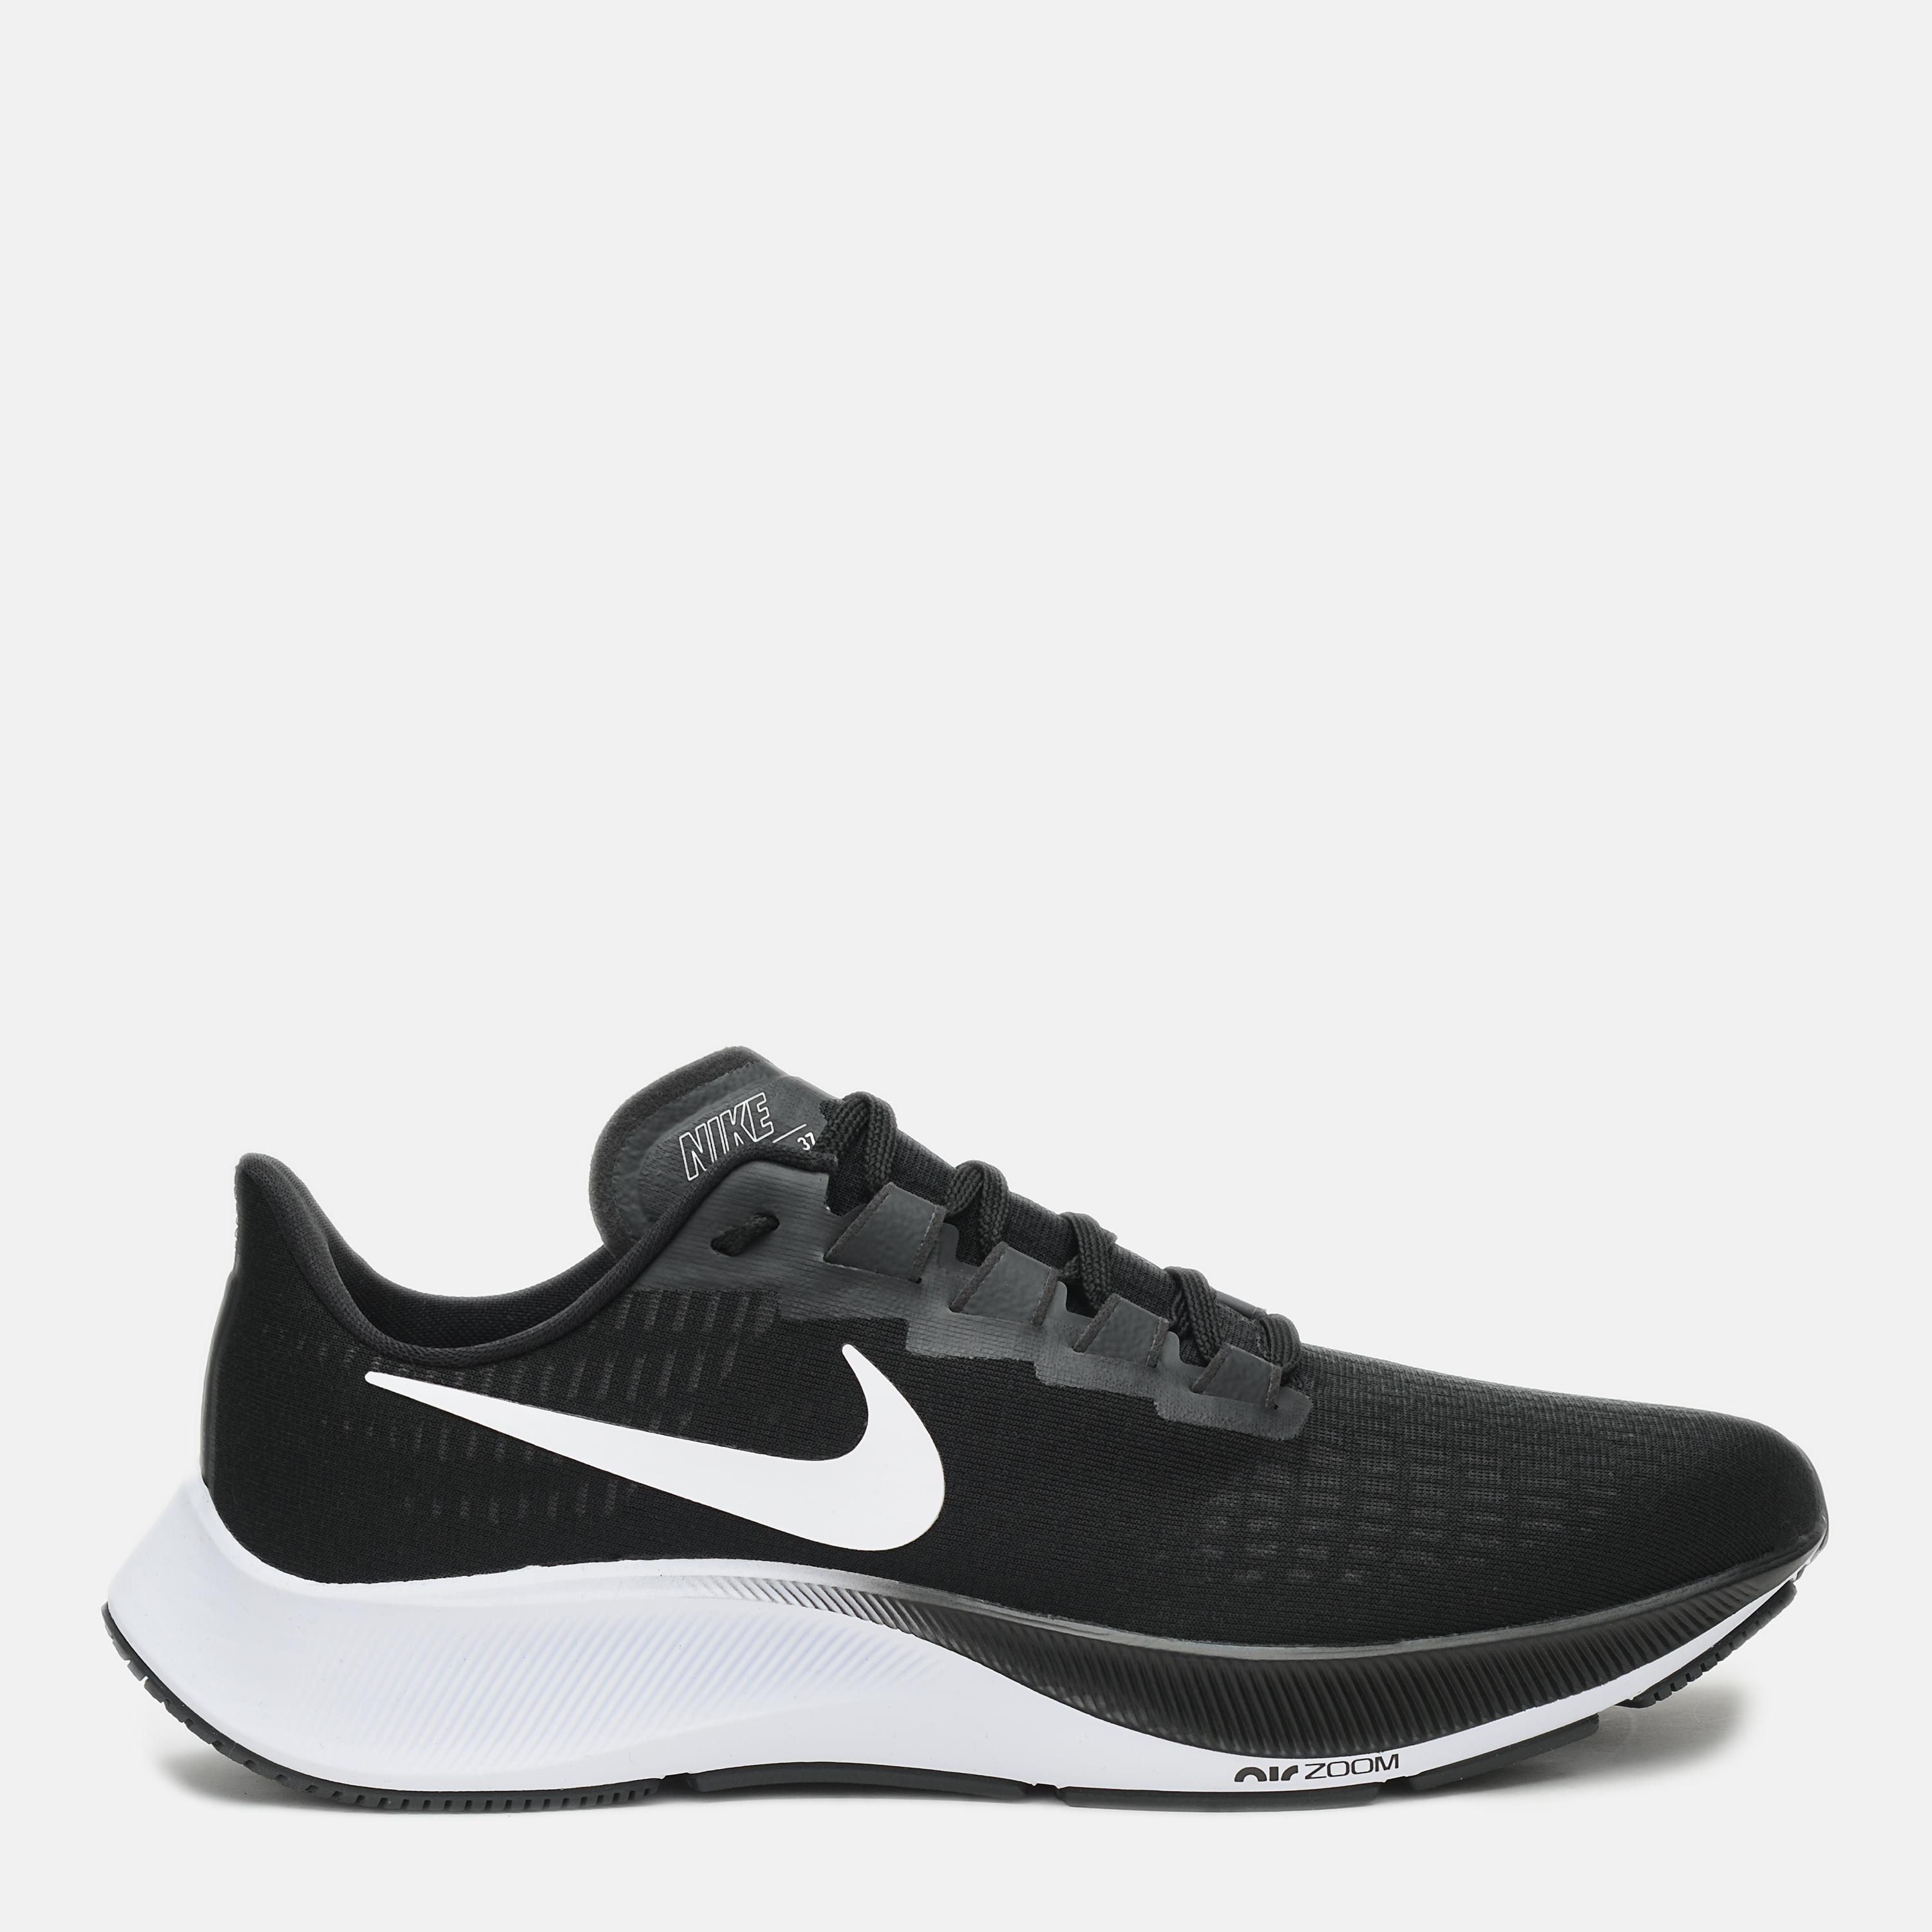 Кроссовки Nike Air Zoom Pegasus 37 BQ9646-002 44 (11.5) 29.5 см